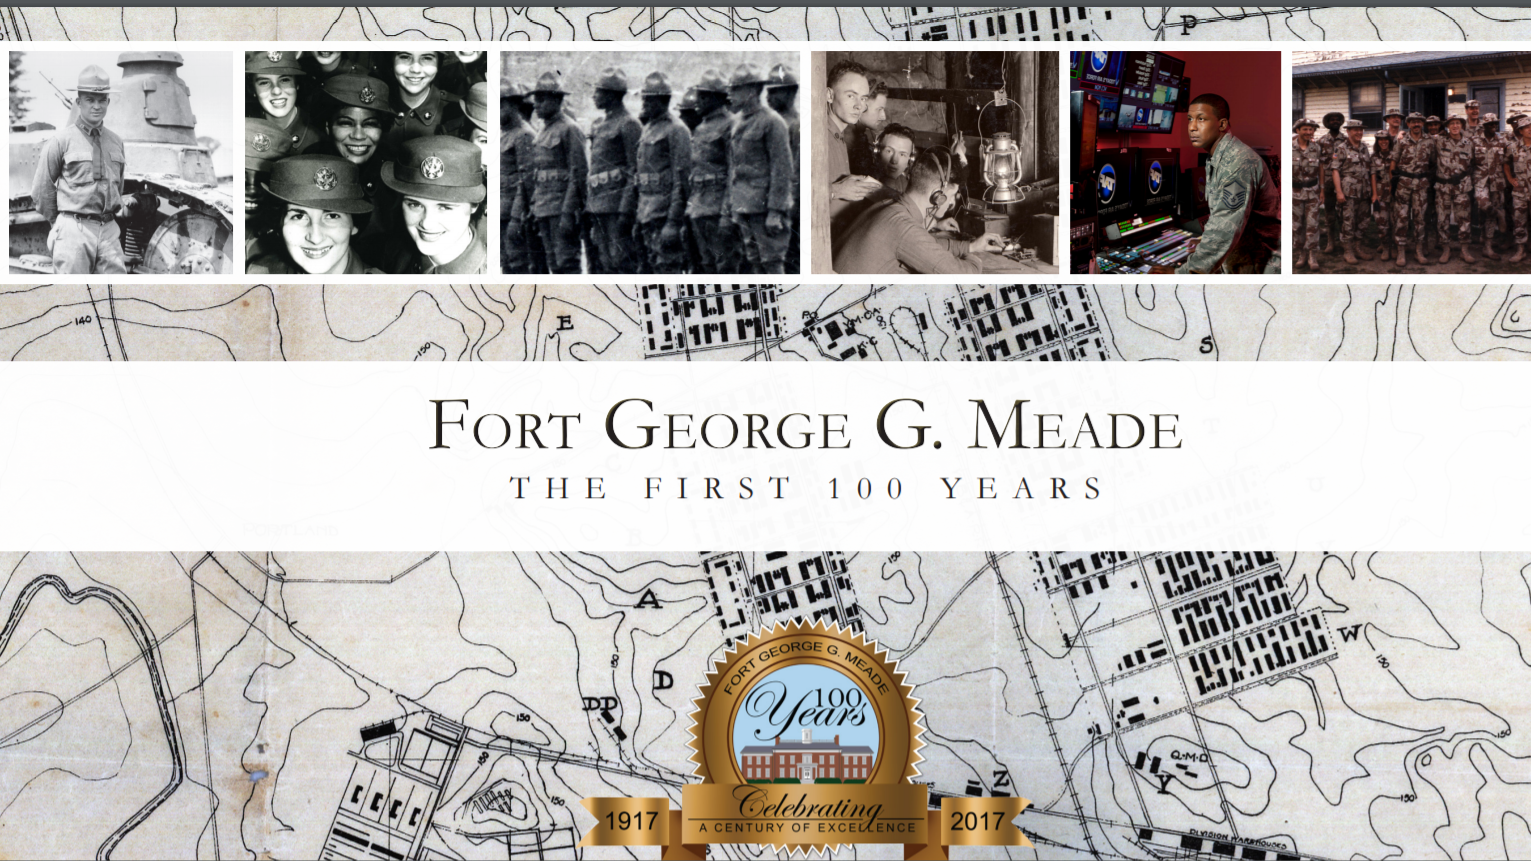 Fort Meade centennial book celebrates service and supports military families